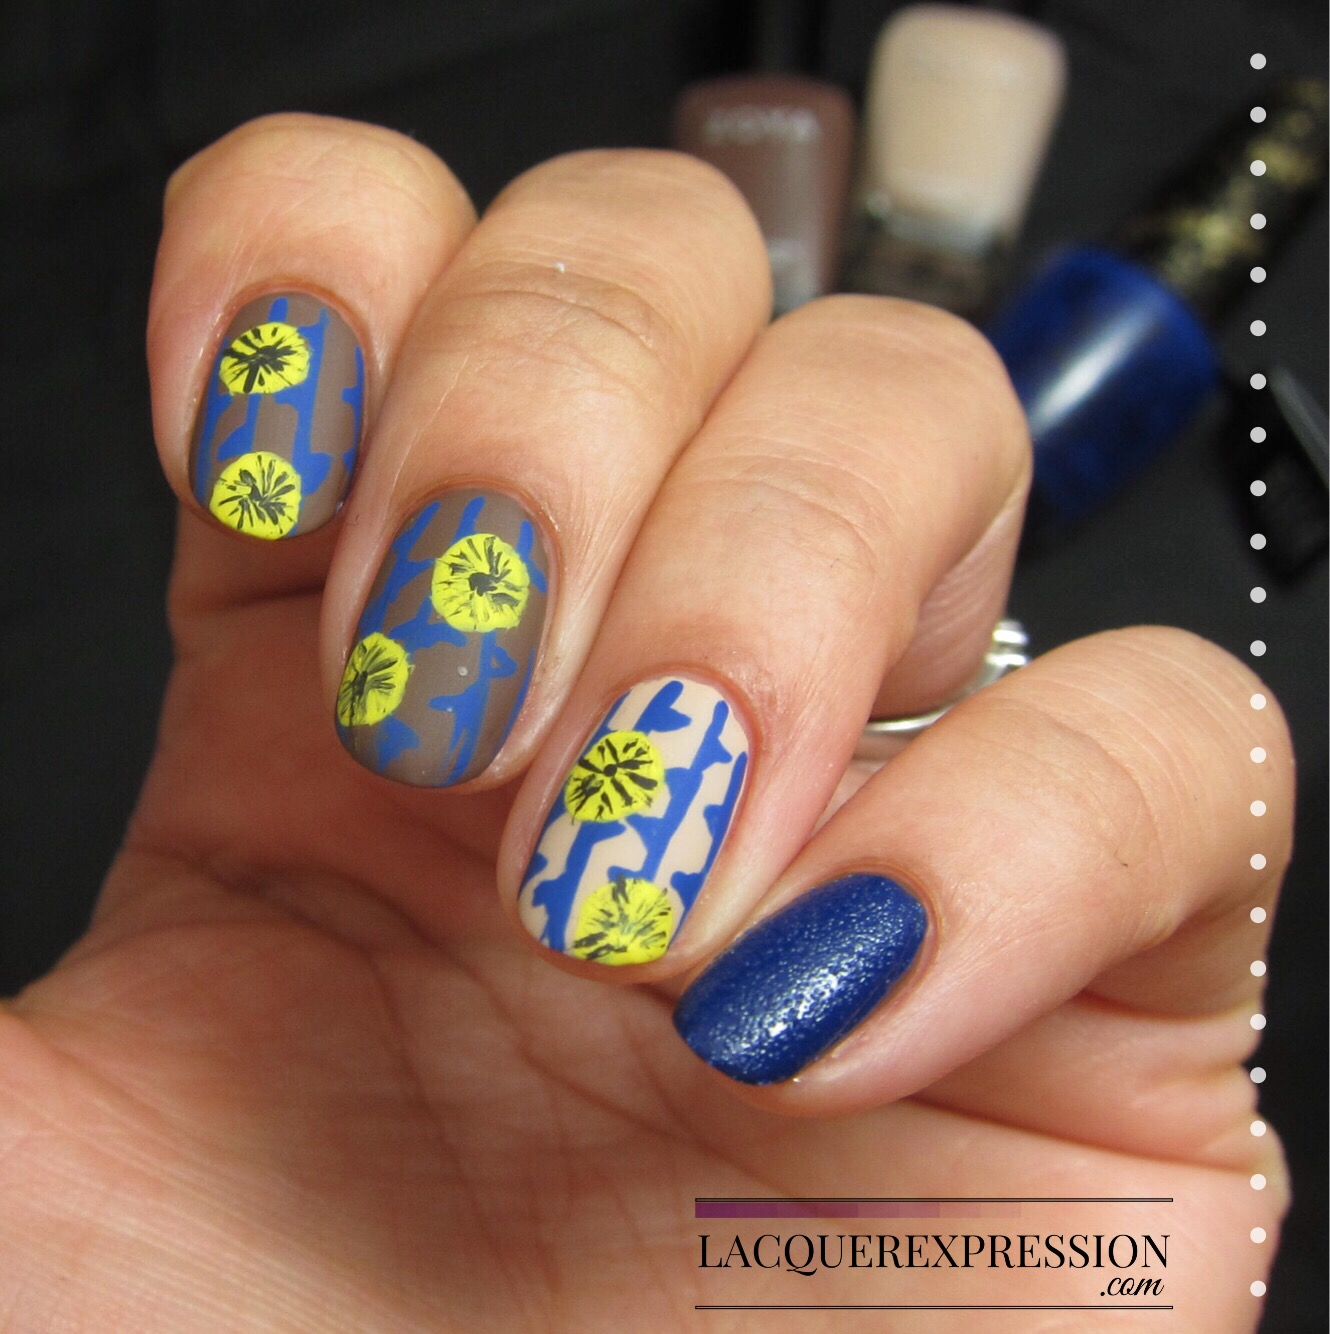 January 2017 lacquerexpression in this edition of step by step nail art thursday i walk you through an easy hand painted floral design that can be easily replicated by most of you with prinsesfo Choice Image